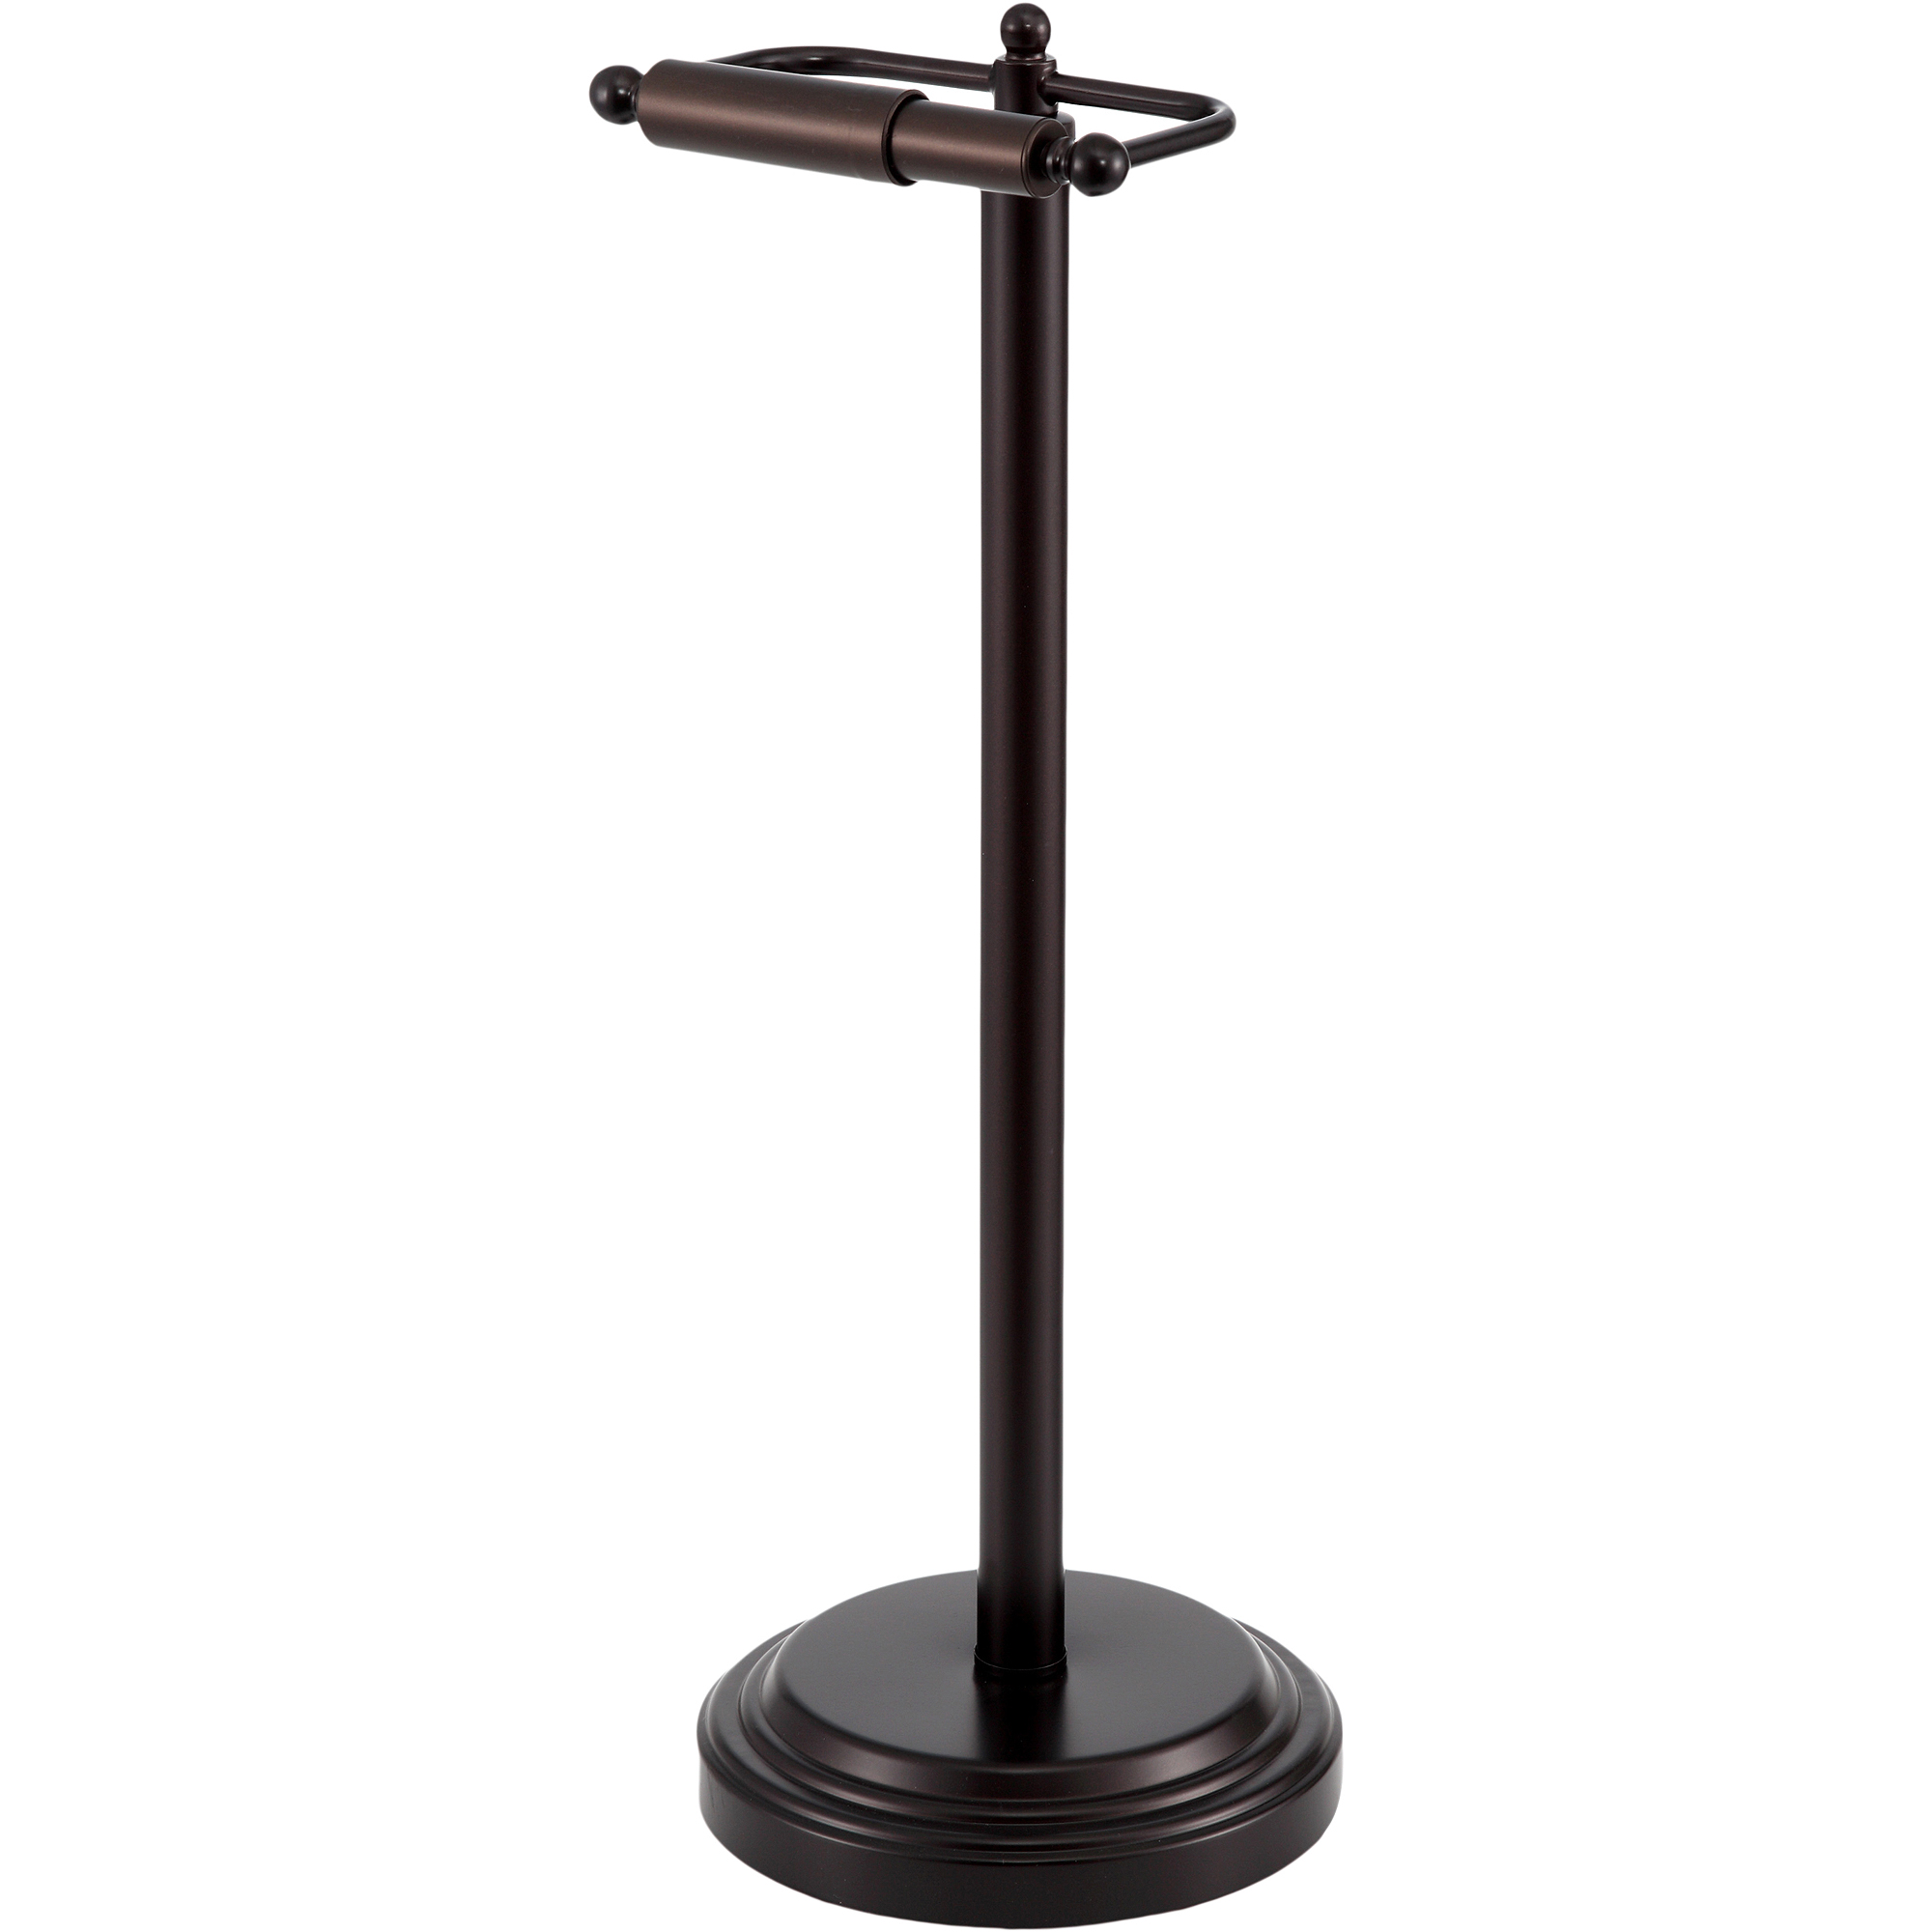 Modern toilet paper holders free standing - Chapter Standing Toilet Paper Holder Oil Rubbed Bronze Finish Walmart Com